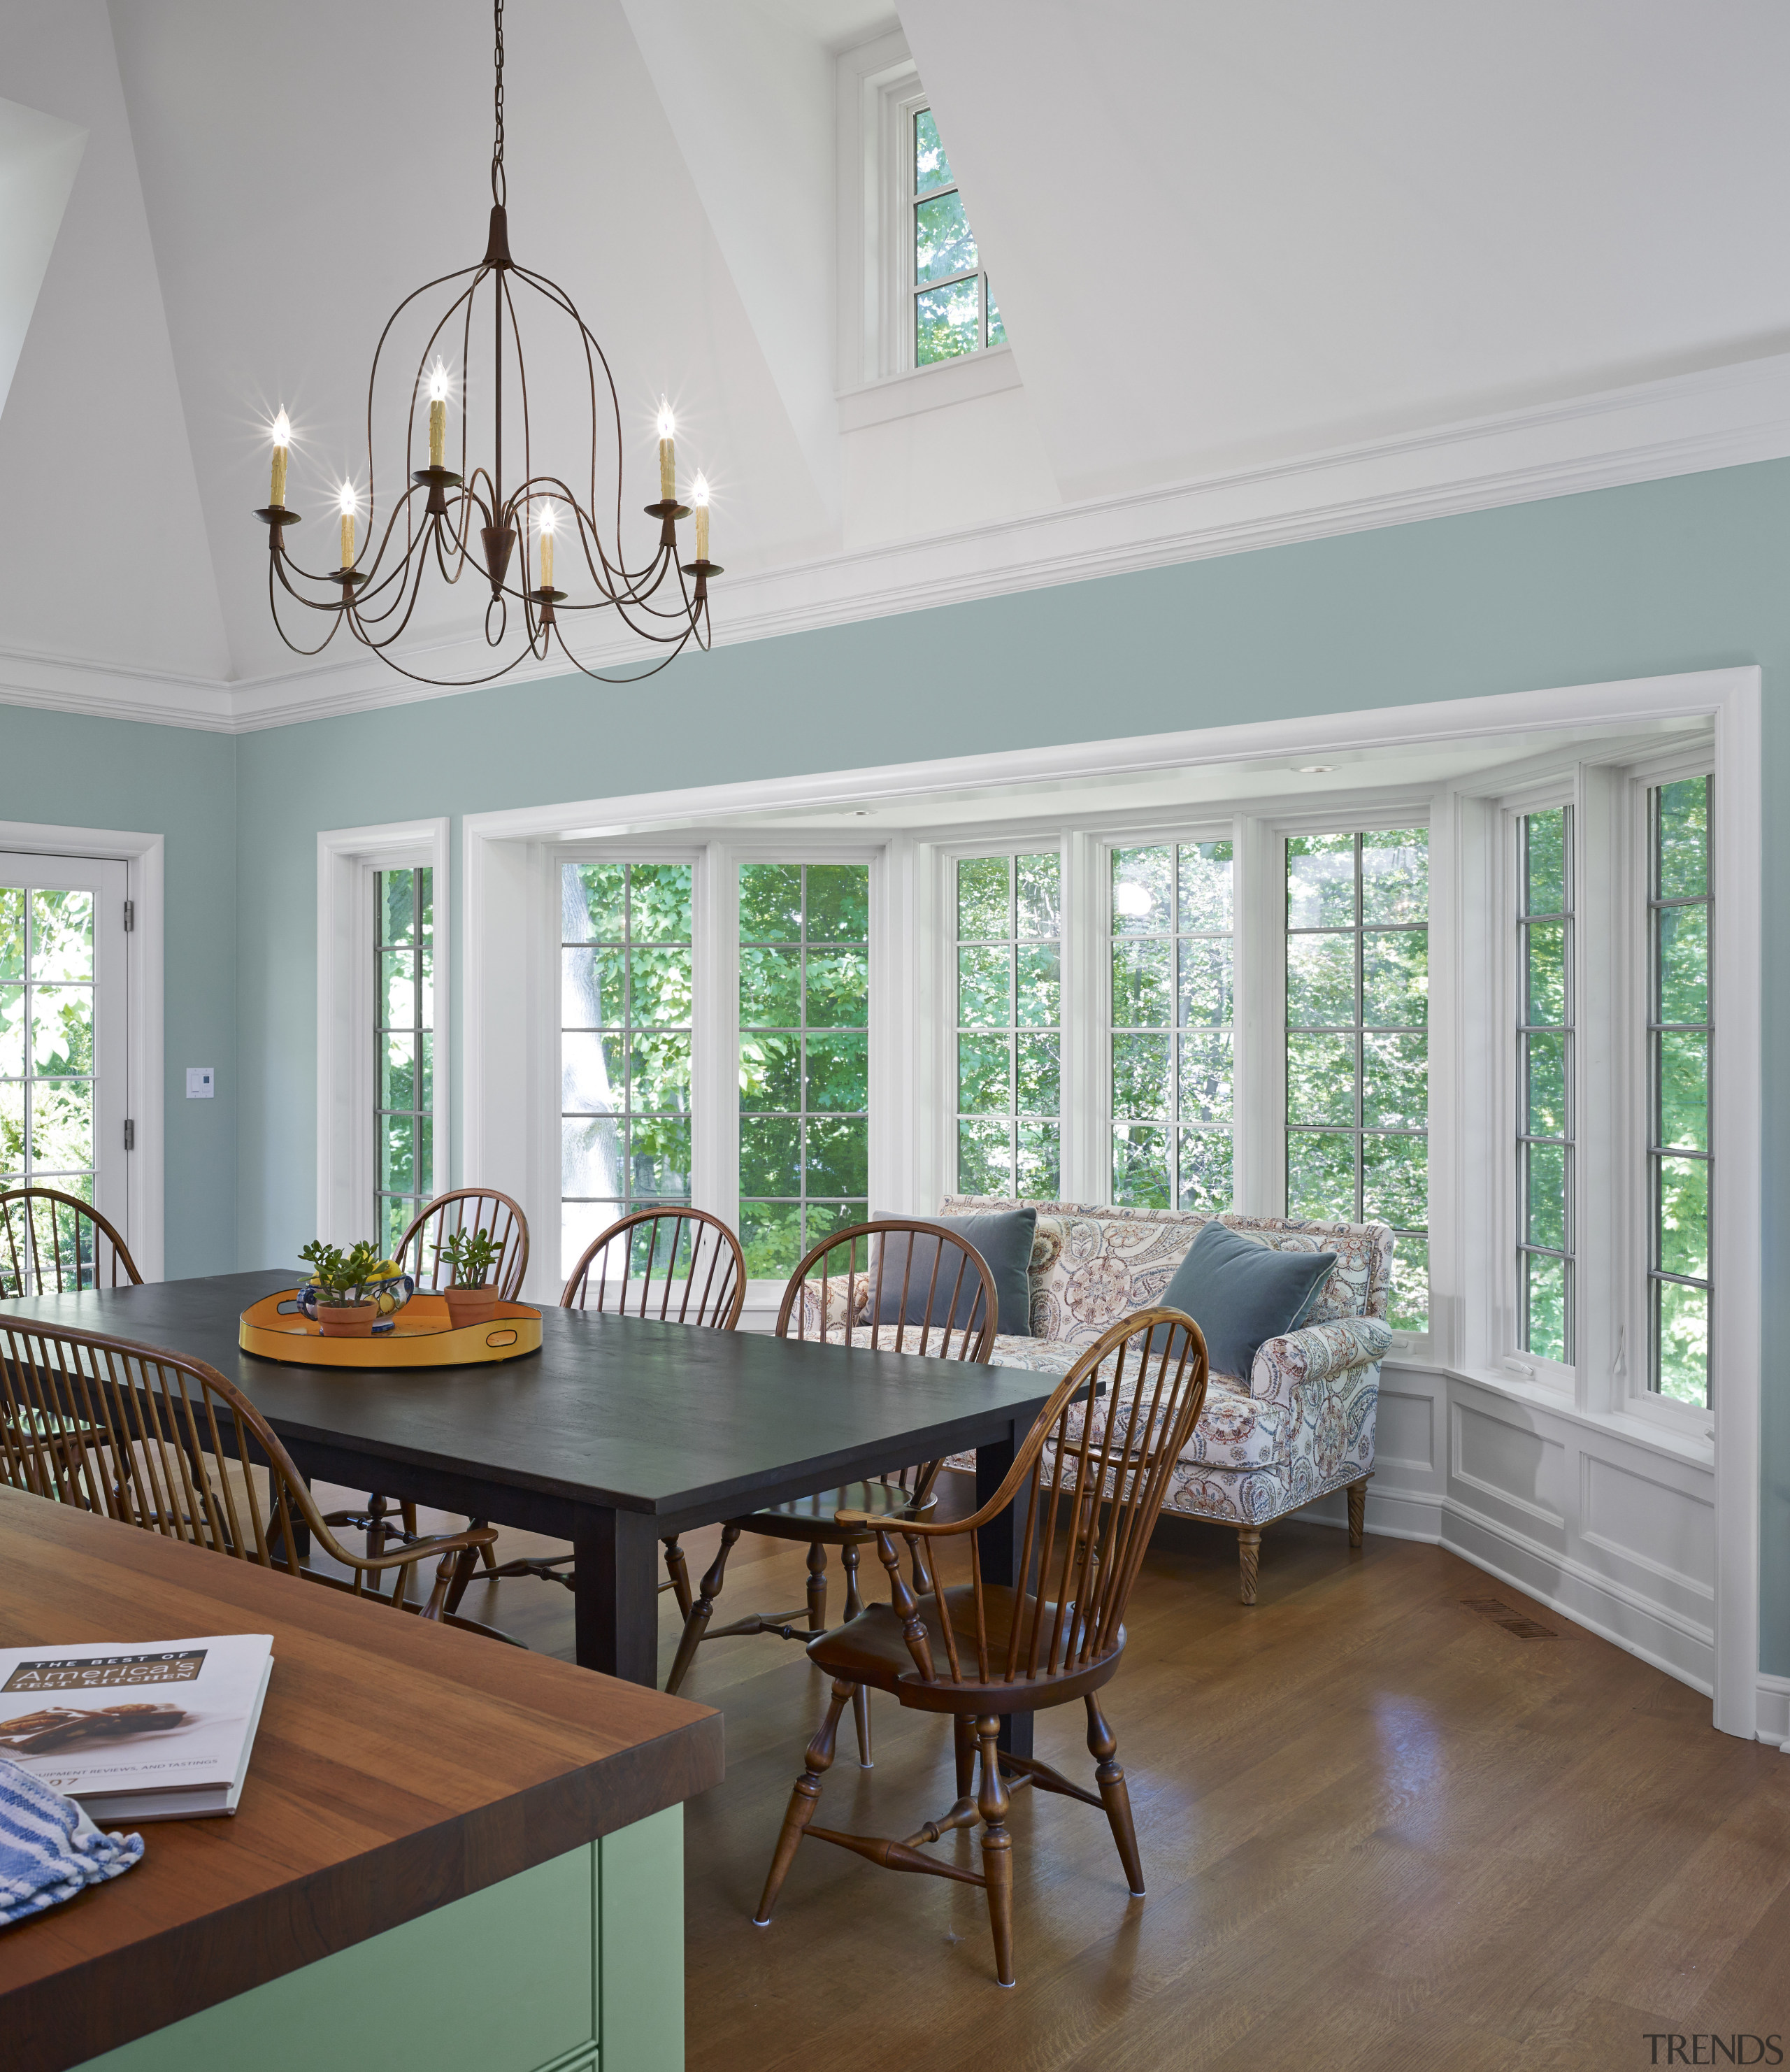 This new kitchen annex includes a bay window, ceiling, dining room, home, interior design, living room, room, table, window, wood, gray